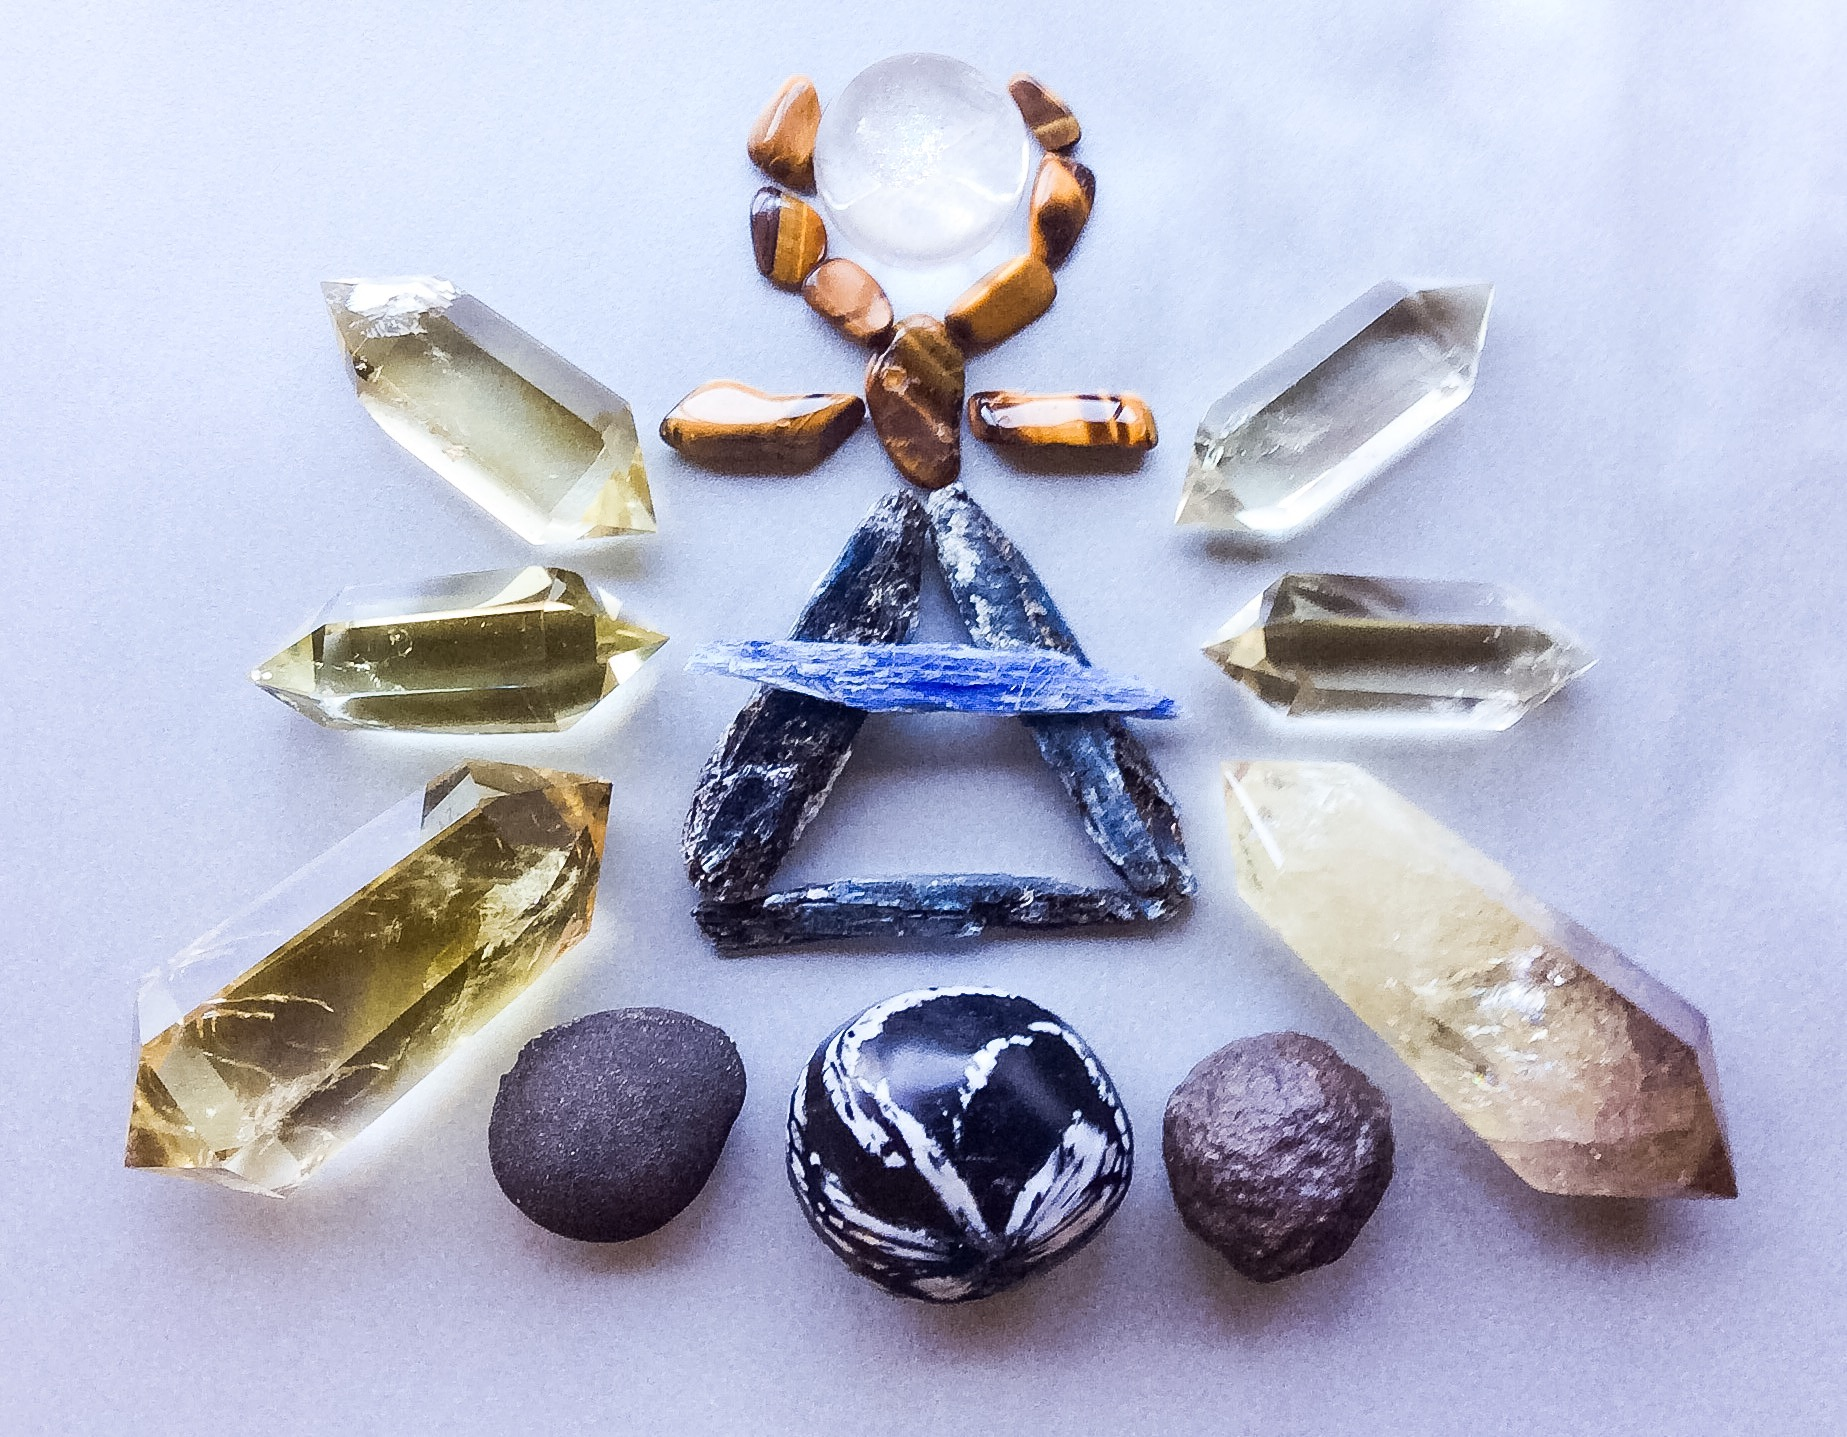 Kyanite, Tiger Eye, Quartz, Chrysanthemum Stone, Boji Stones and Citrine